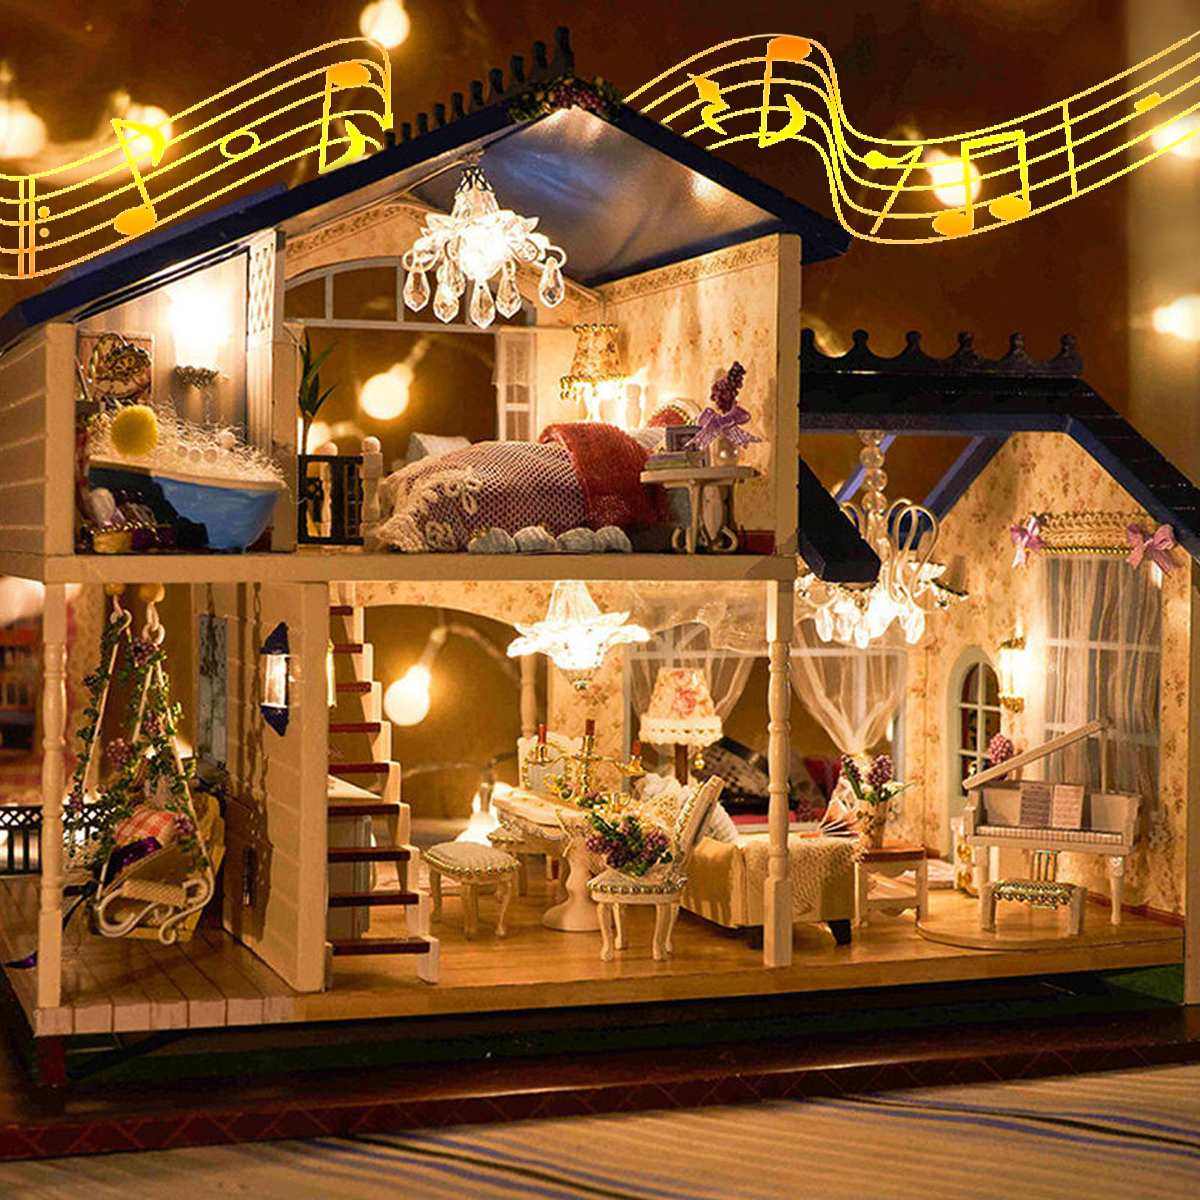 Music LED Light Miniature Doll House Provence Dollhouse DIY Kit Wooden House Model Toy with Furniture Birthday Christmas Gifts diy miniature wooden dollhouse caribbean sea cute room with music big doll house toy for girl birthday gift christmas present